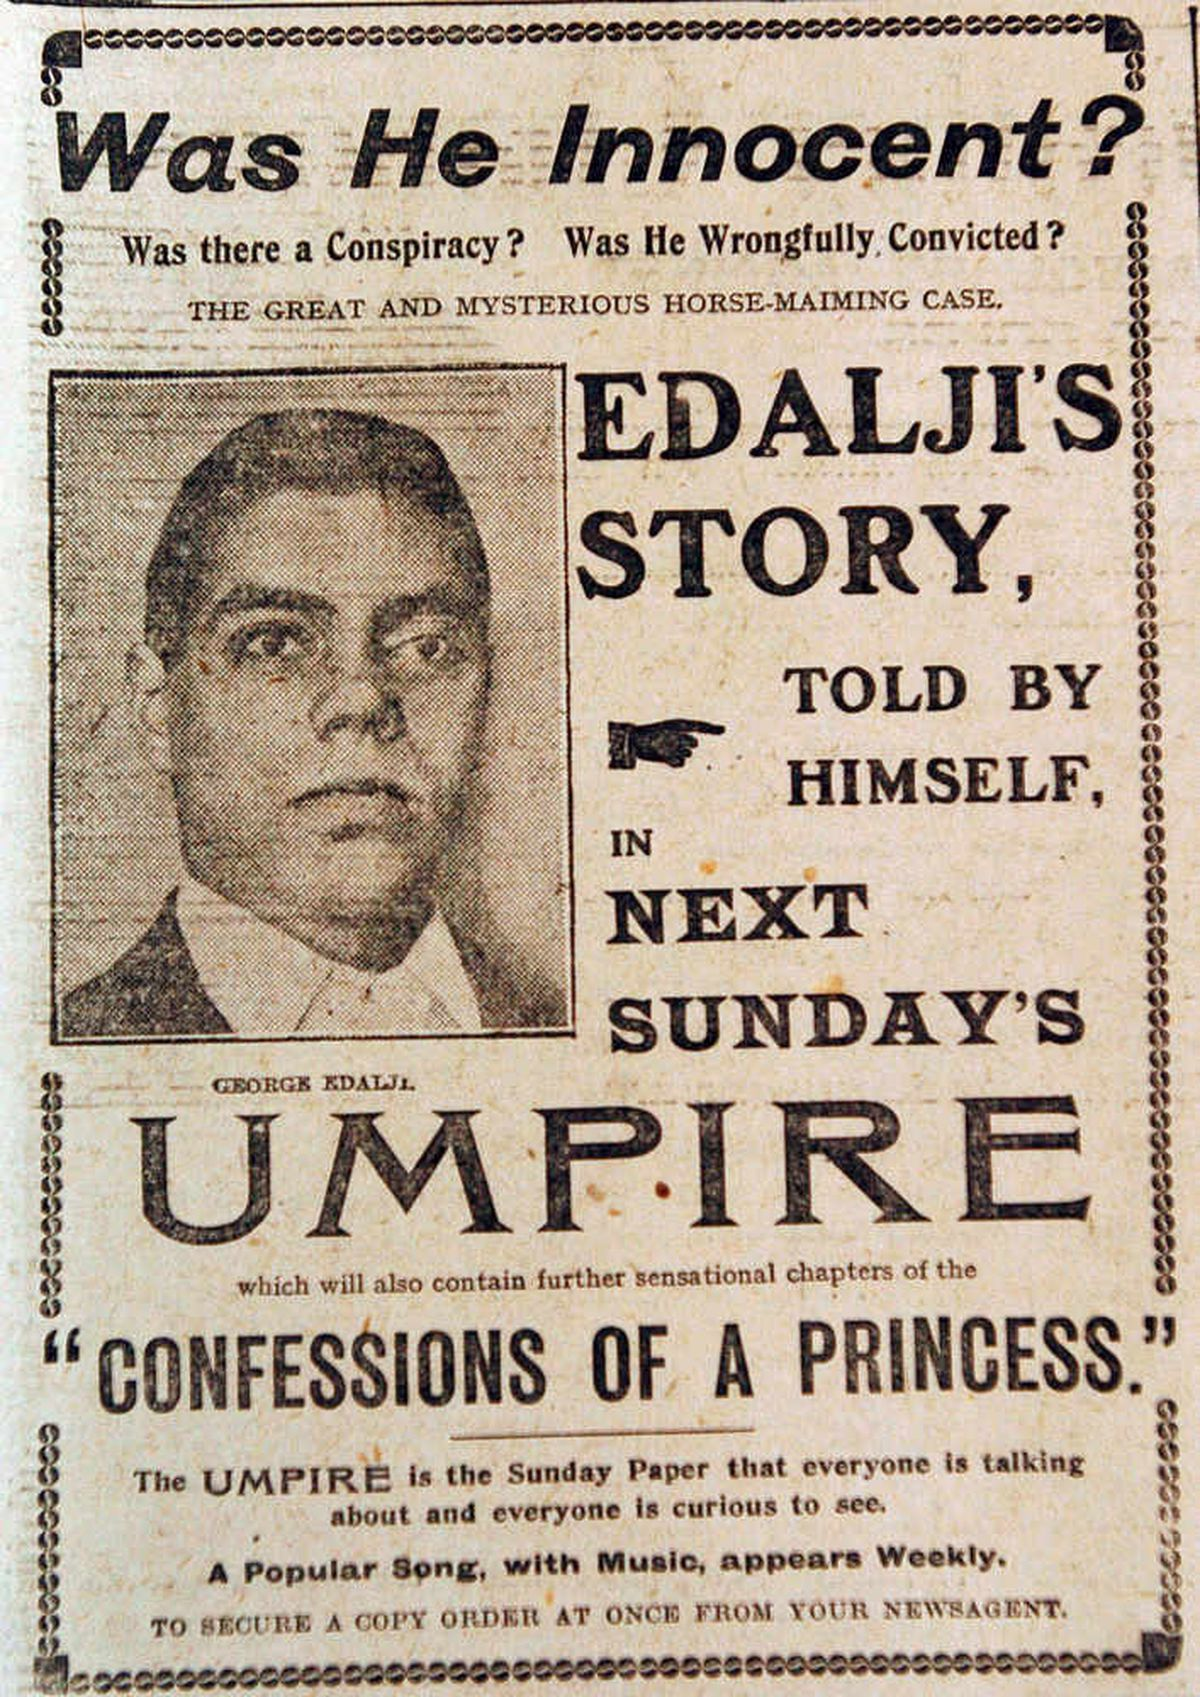 Court story copy from the Express & Star about the case of George Edalji.